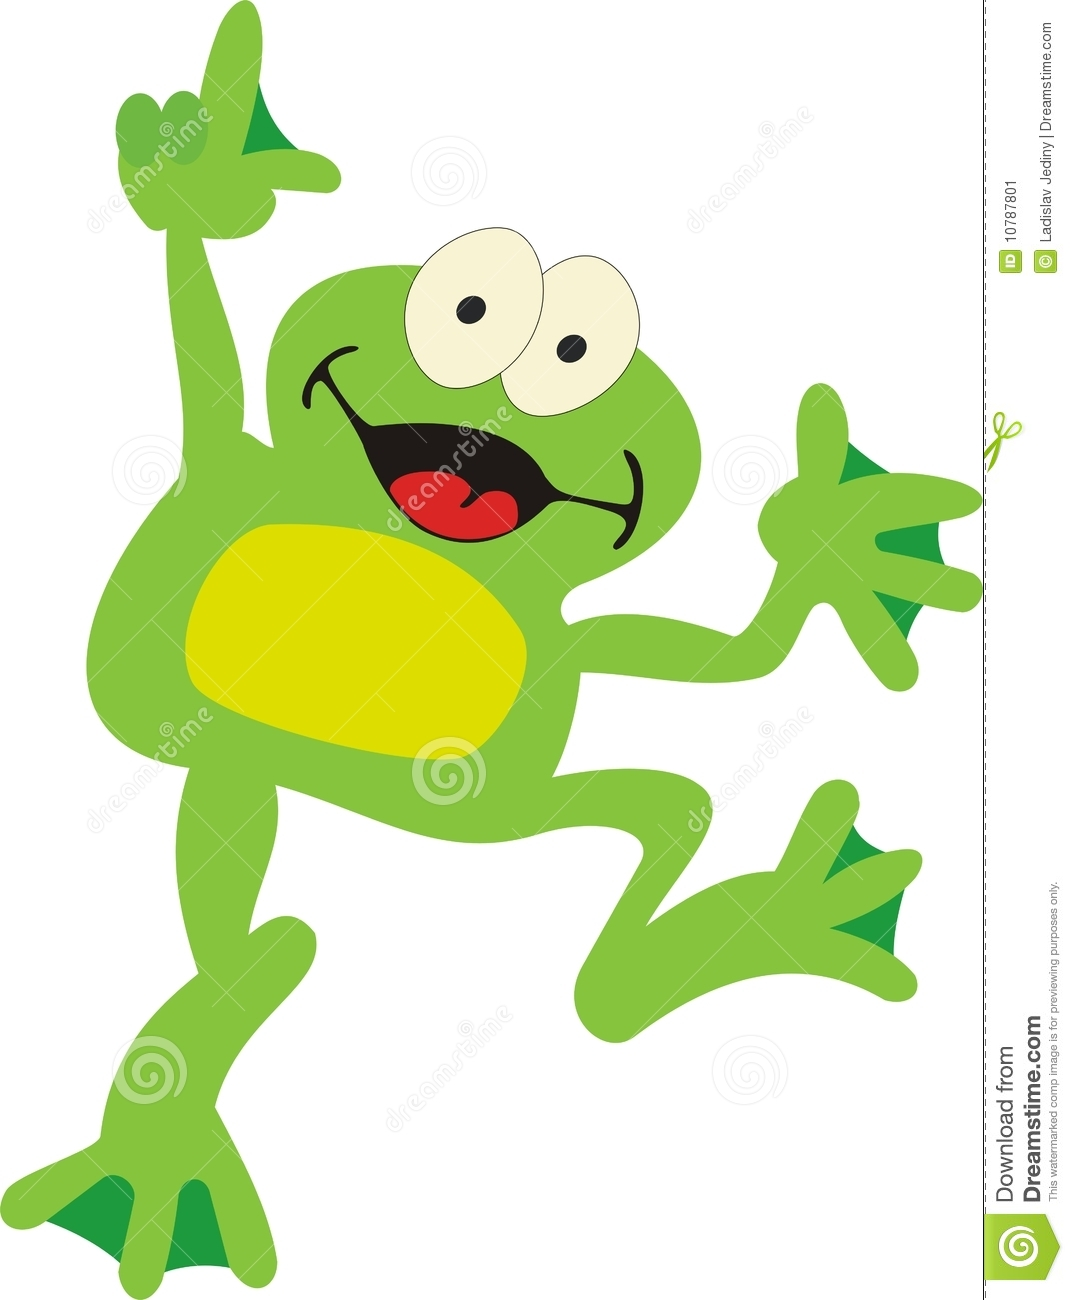 1073x1300 Excellent Idea Frog Jumping Clipart Smile Stock Image Panda Free